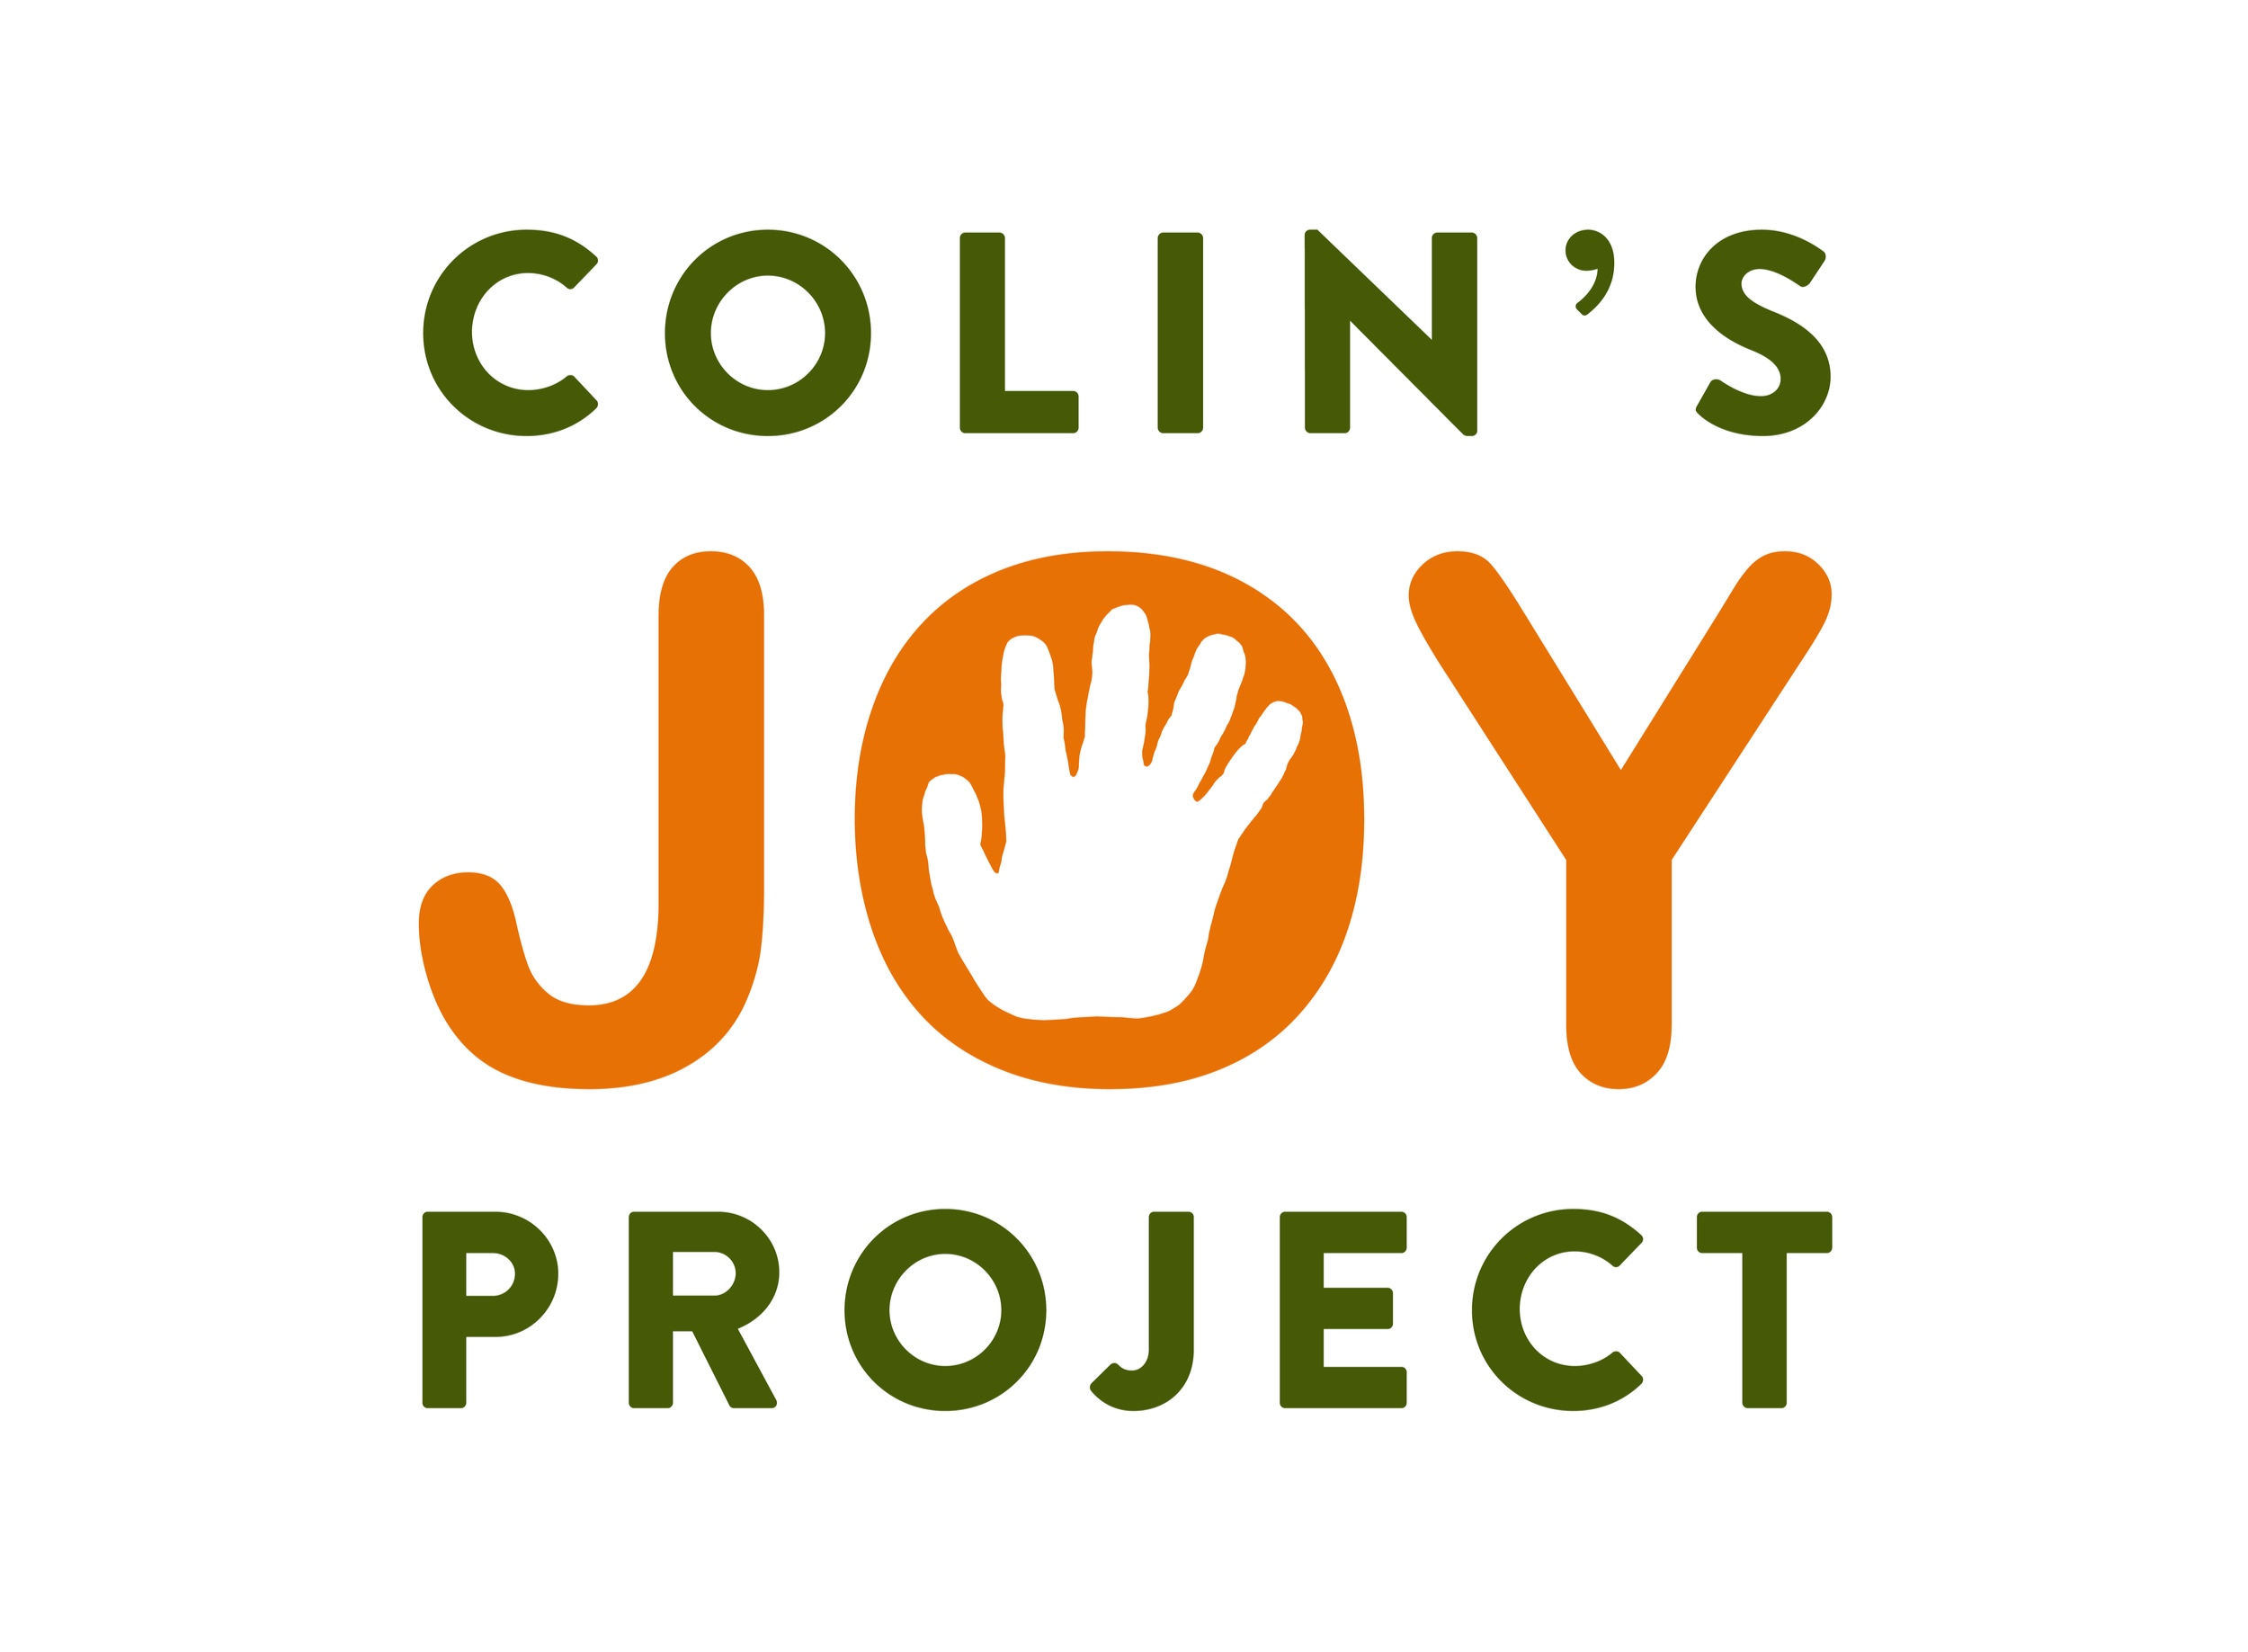 colins+joy+project+logo+sip+dine+design